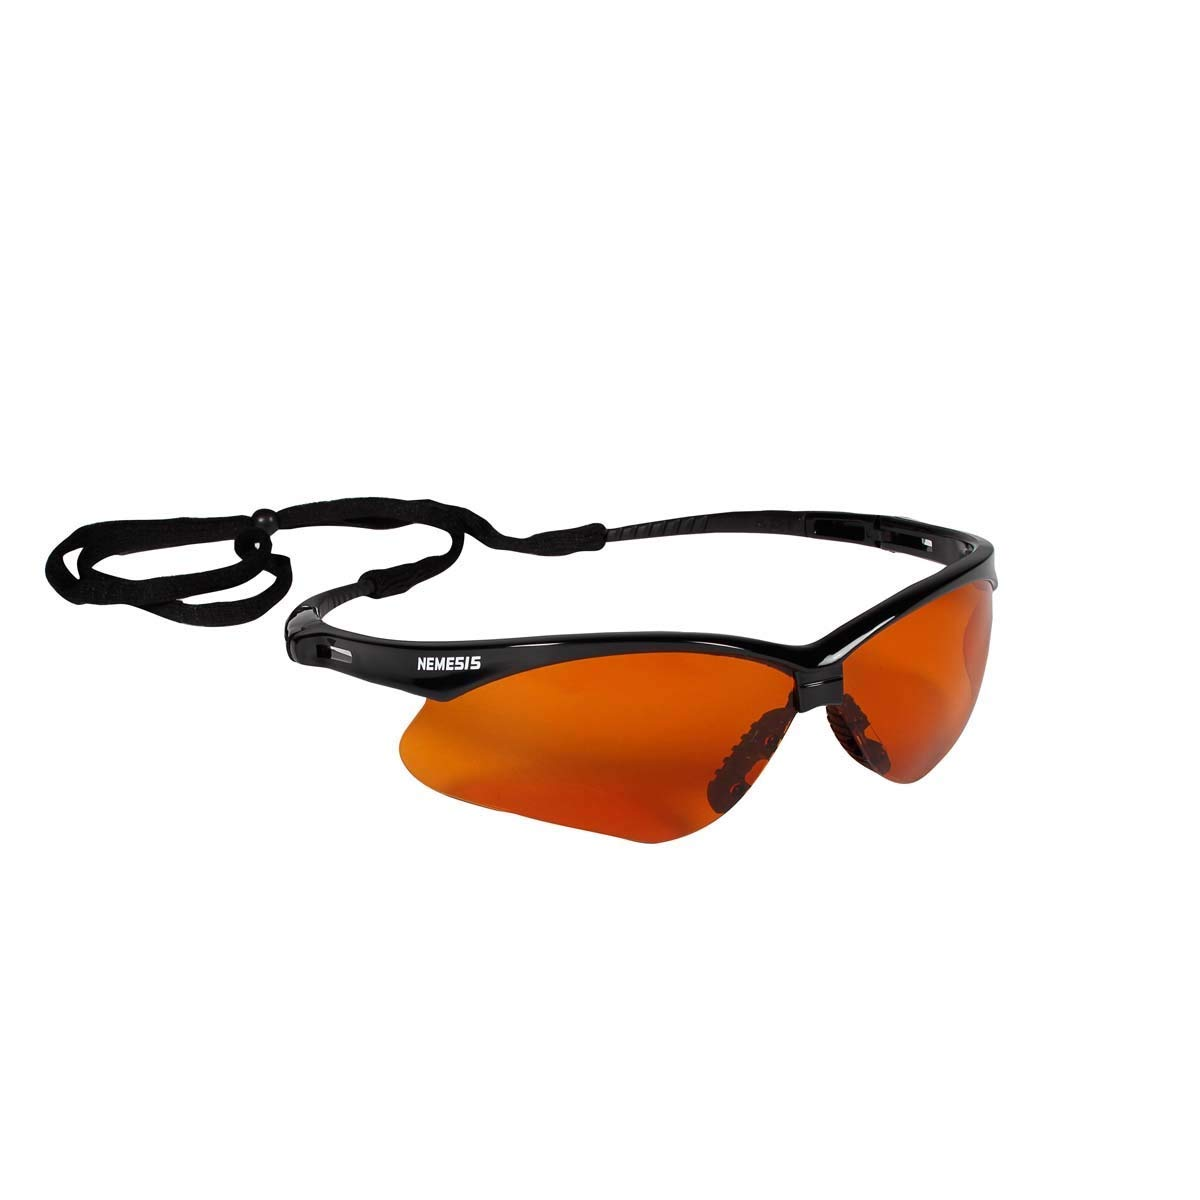 73edd4c3627 Get Quotations · Kimberly-Clark Professional Jackson Safety Nemesis Black Safety  Glasses With Brown Copper Blue Shield Hard